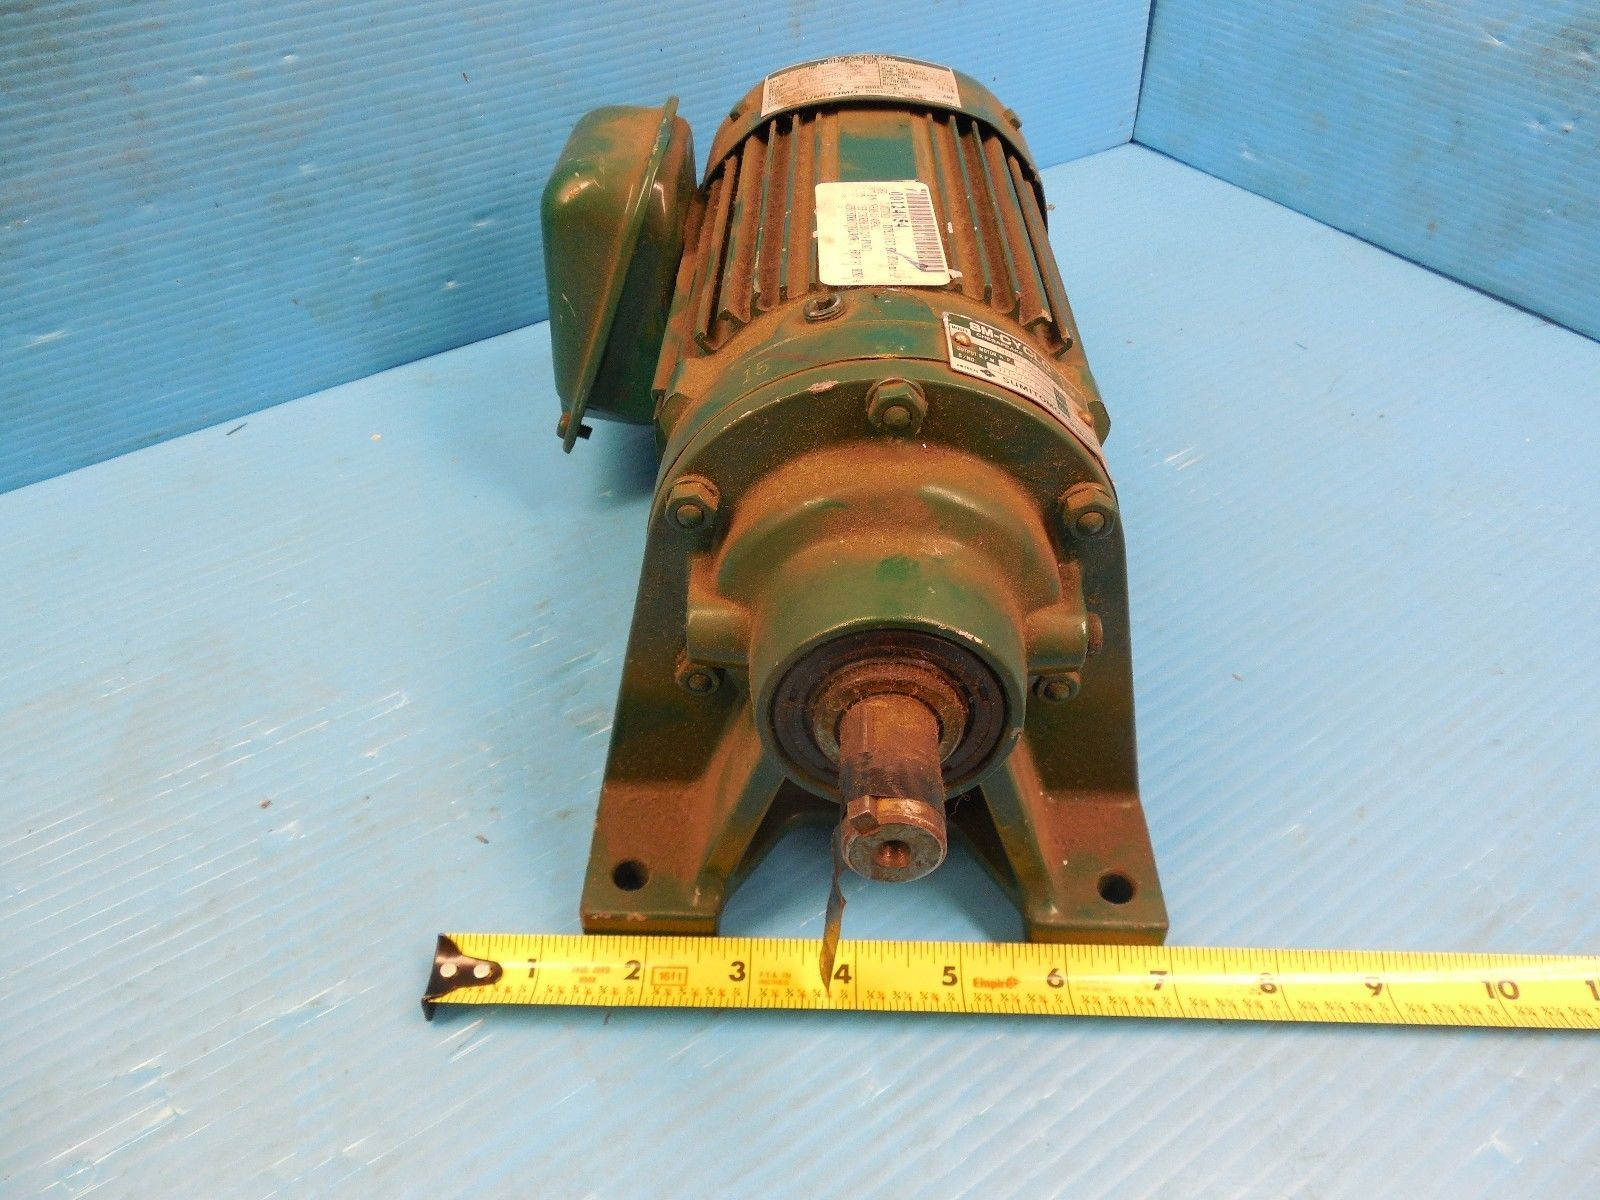 SM CYCLO SUMITOMO CNHMS05-4085YA AC GEAR MOTOR INDUSTRIAL MACHINERY TOOLING